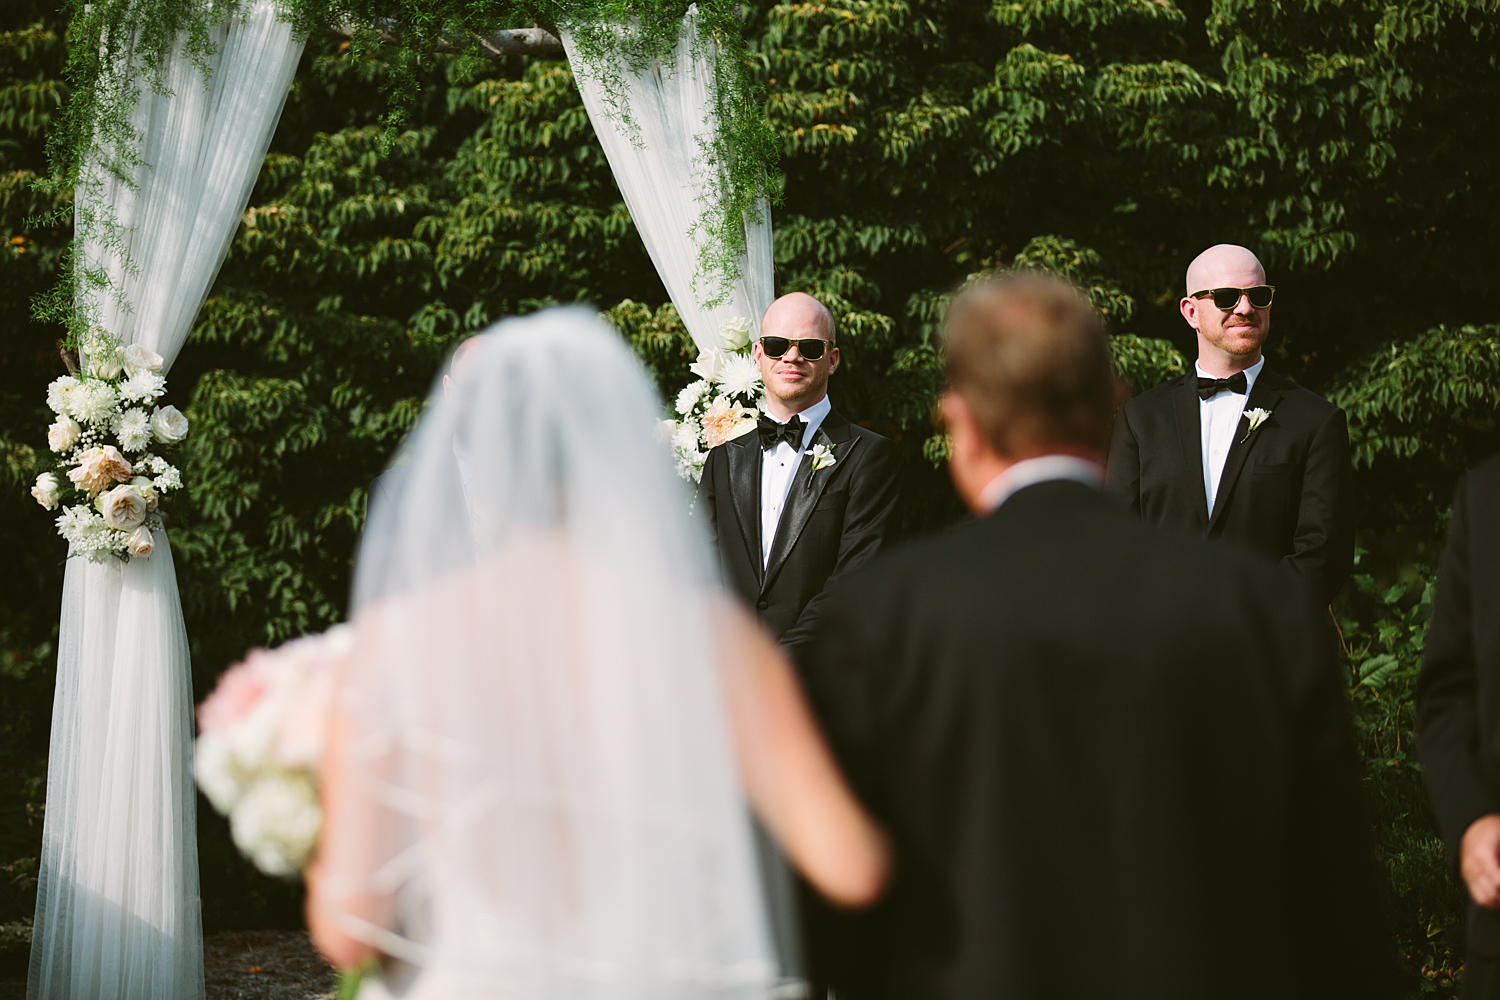 jeremy-russell-lake-lure-wedding-15-37.jpg